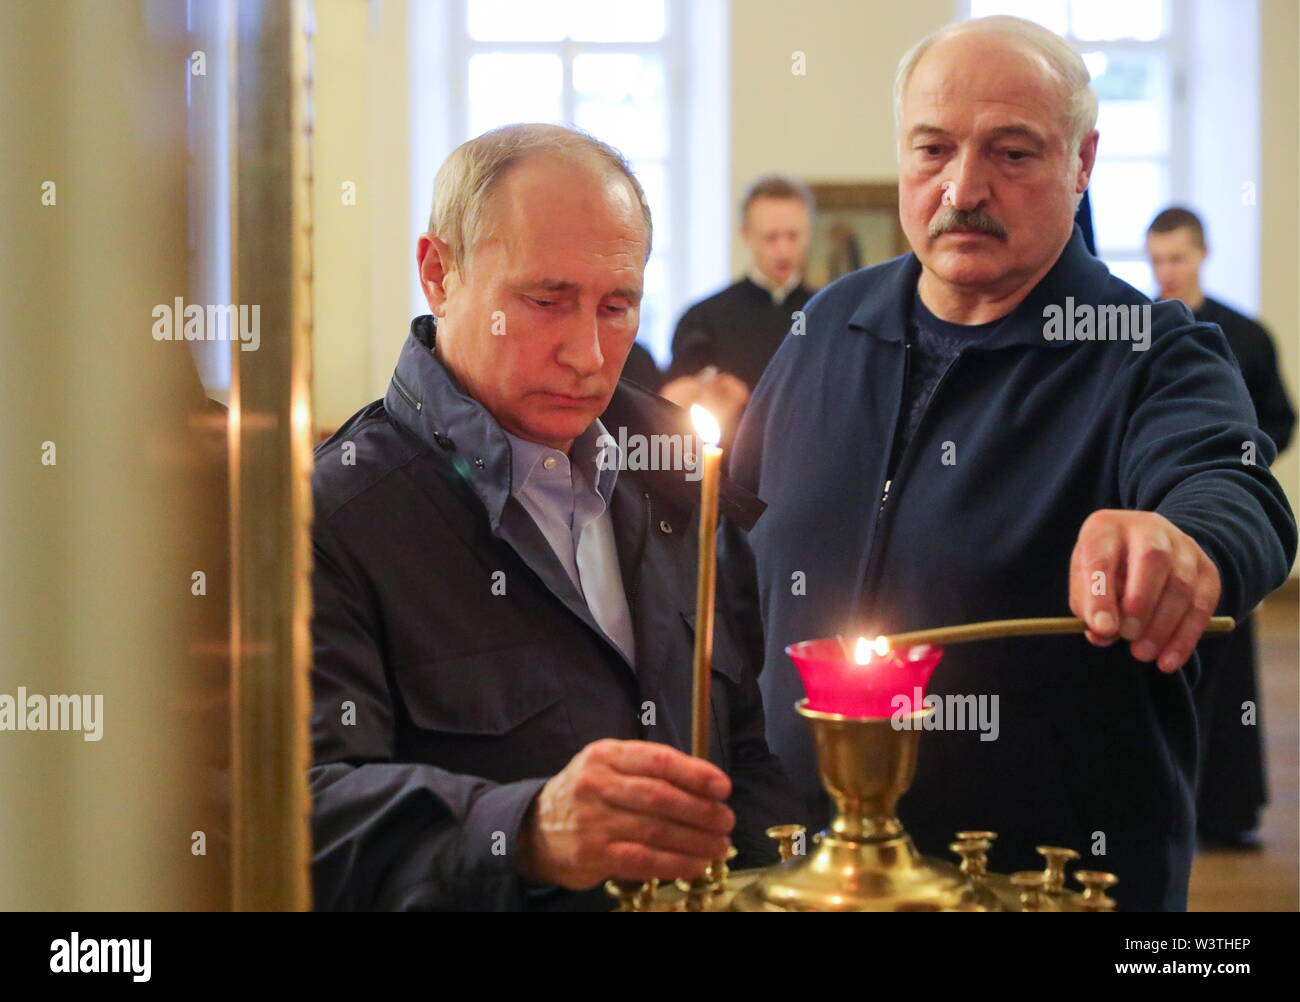 Russia. 17th July, 2019. LENINGRAD REGION, RUSSIA - JULY 17, 2019: Russia's President Vladimir Putin (L) and Belarus' President Alexander Lukashenko light candles on their visit to the Konevsky Monastery on Lake Ladoga. Mikhail Klimentyev/Russian Presidential Press and Information Office/TASS Credit: ITAR-TASS News Agency/Alamy Live News - Stock Image